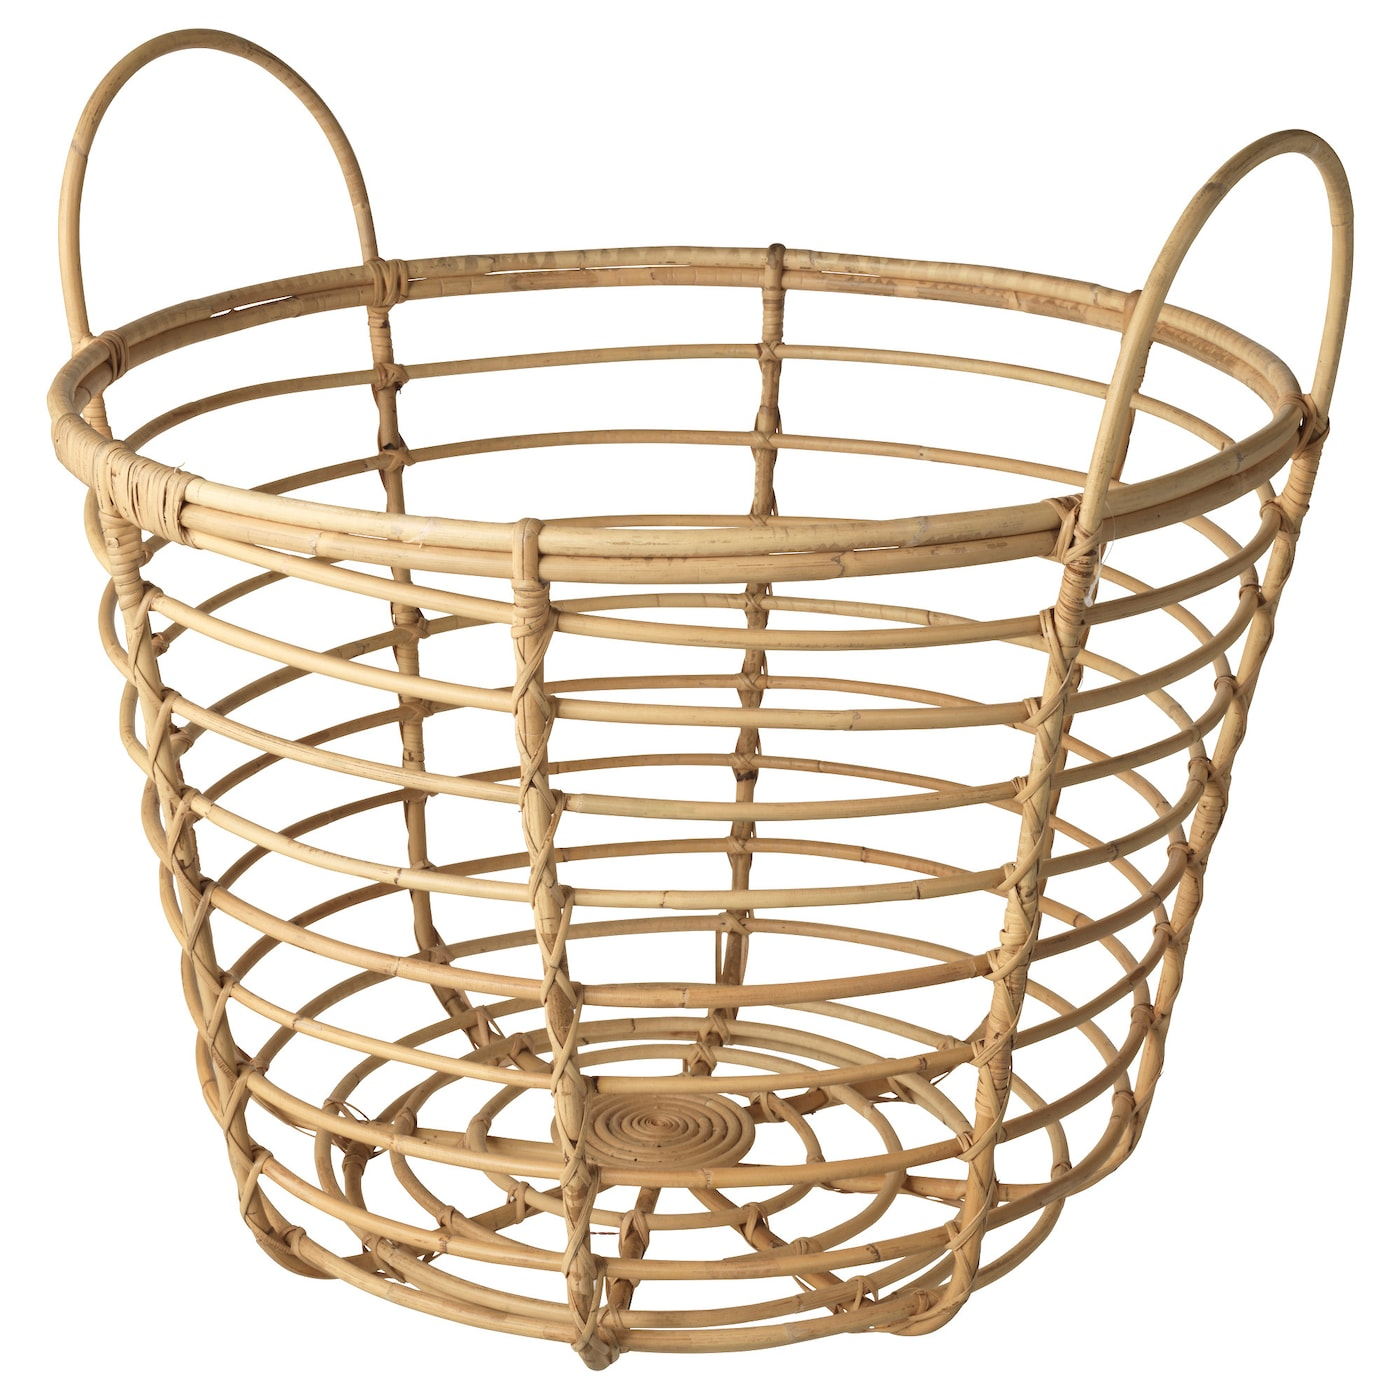 IKEA JASSA basket with handles Handmade by skilled craftspeople, which makes every product unique.